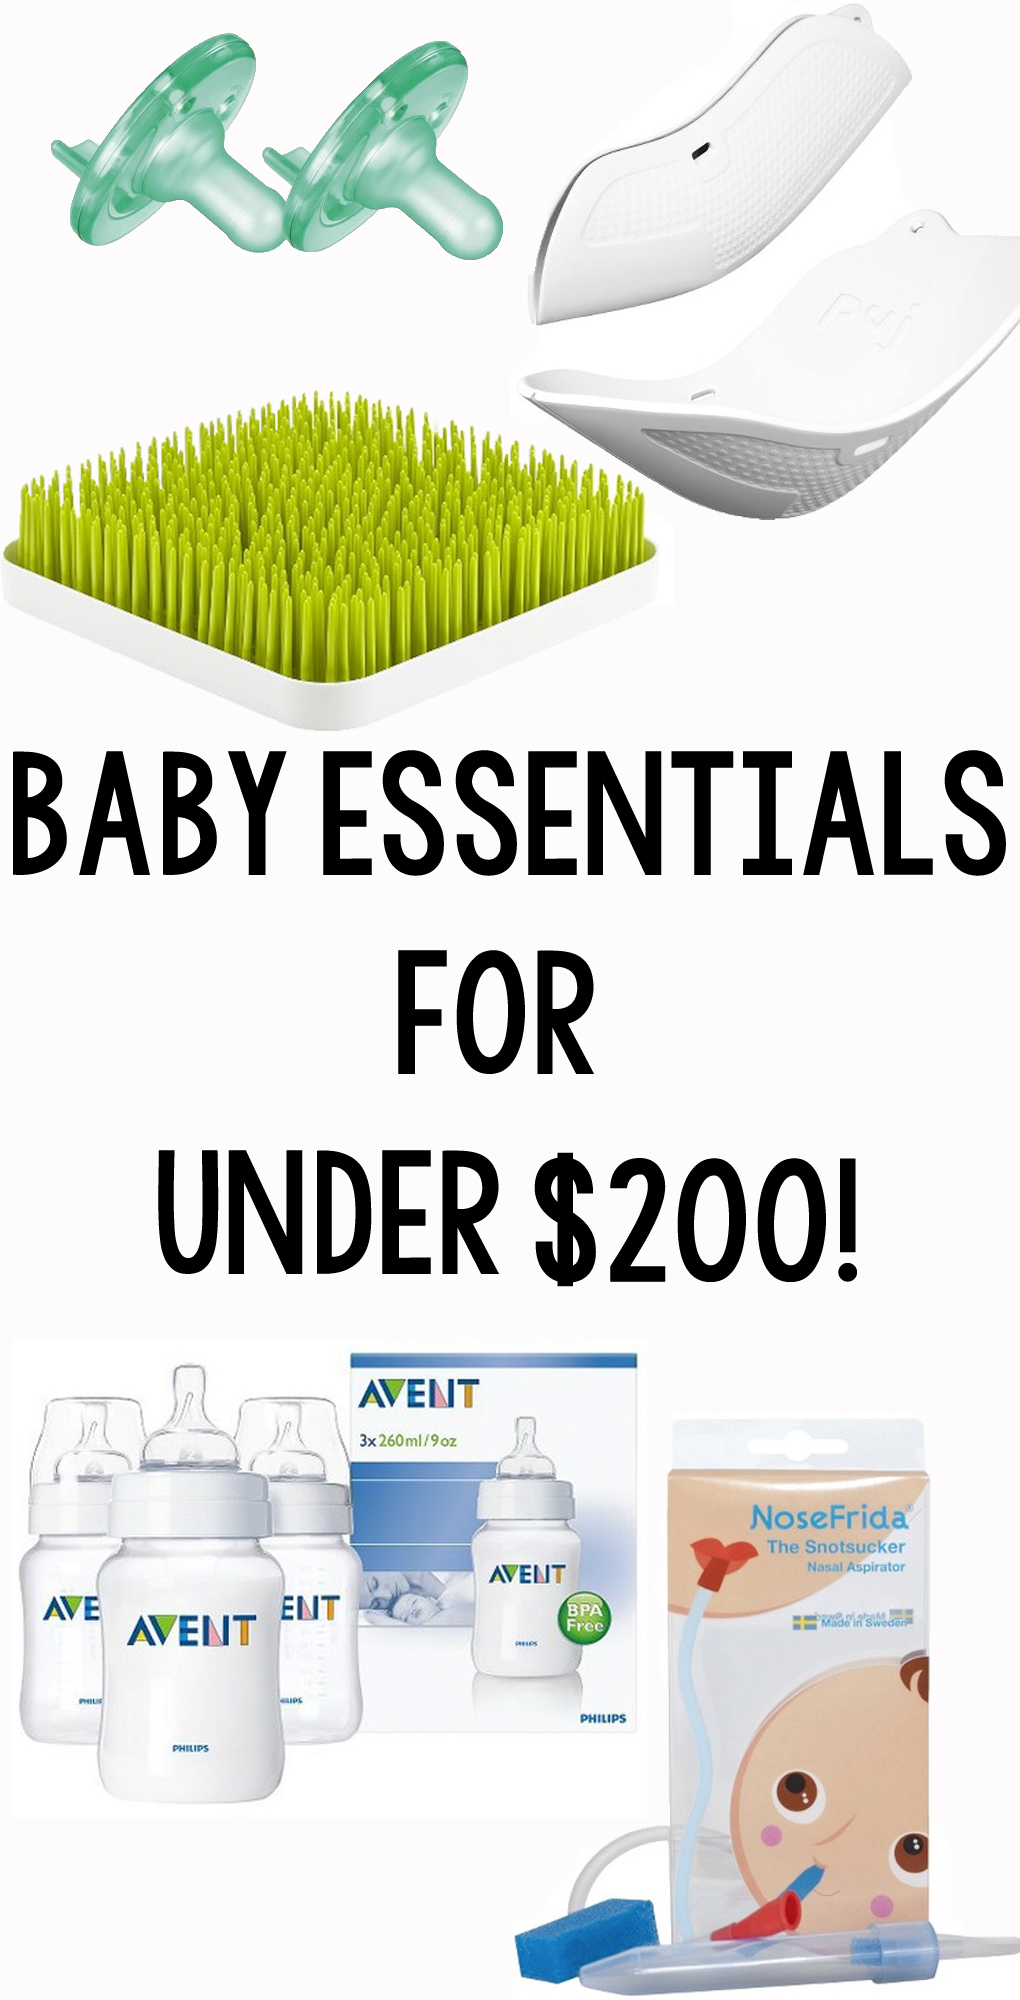 Baby Essentials for Under $200